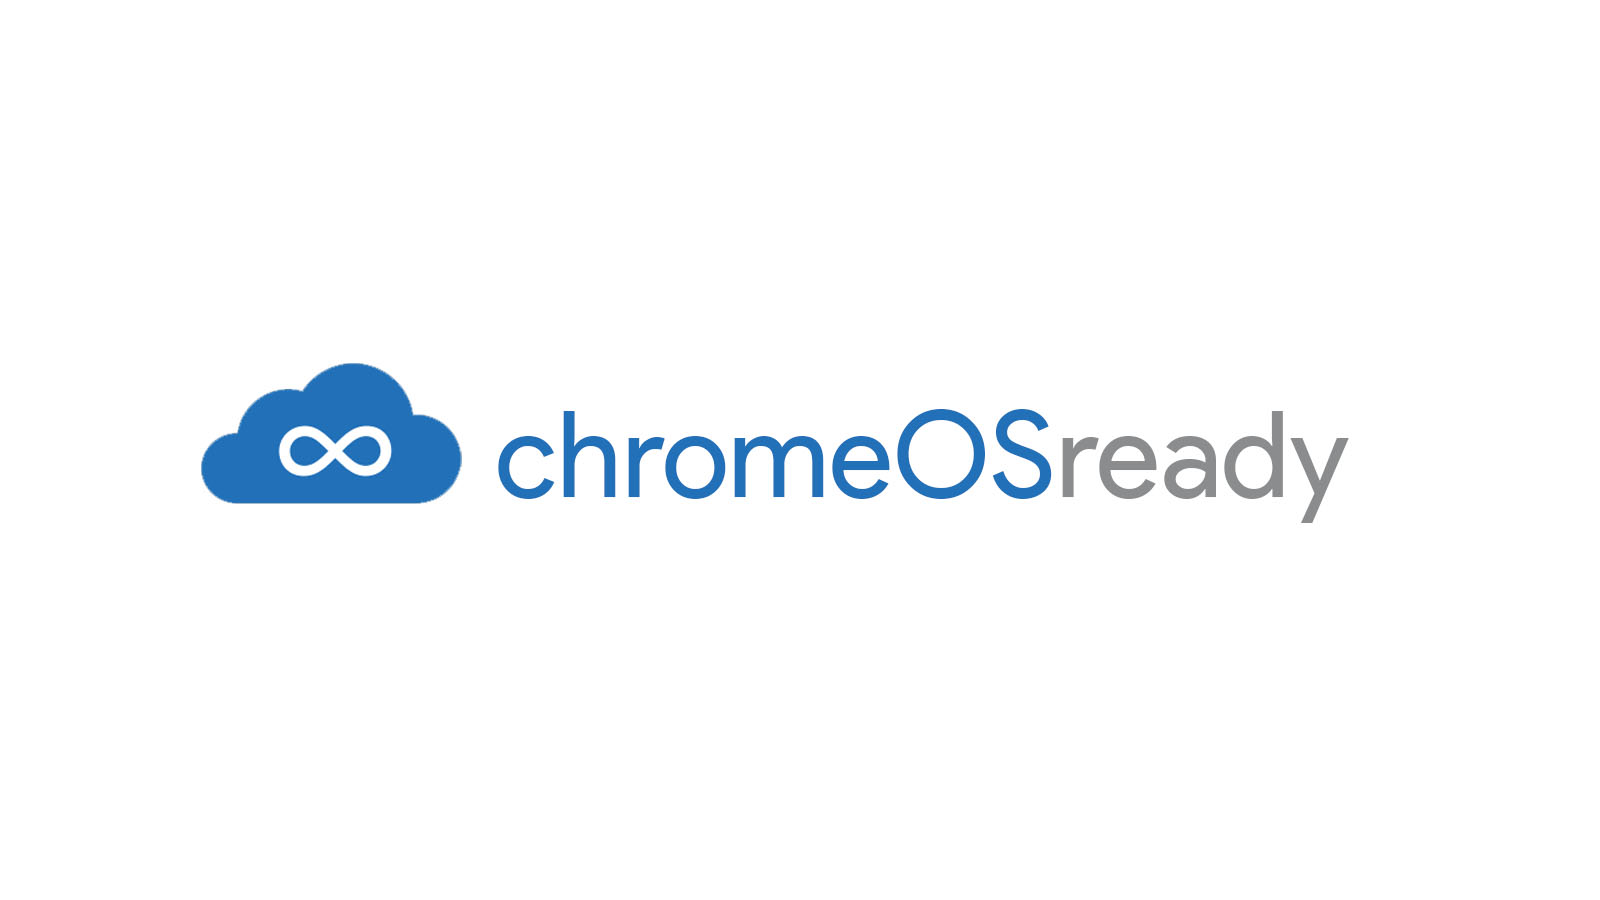 Google begins integrating CloudReady into Chrome OS